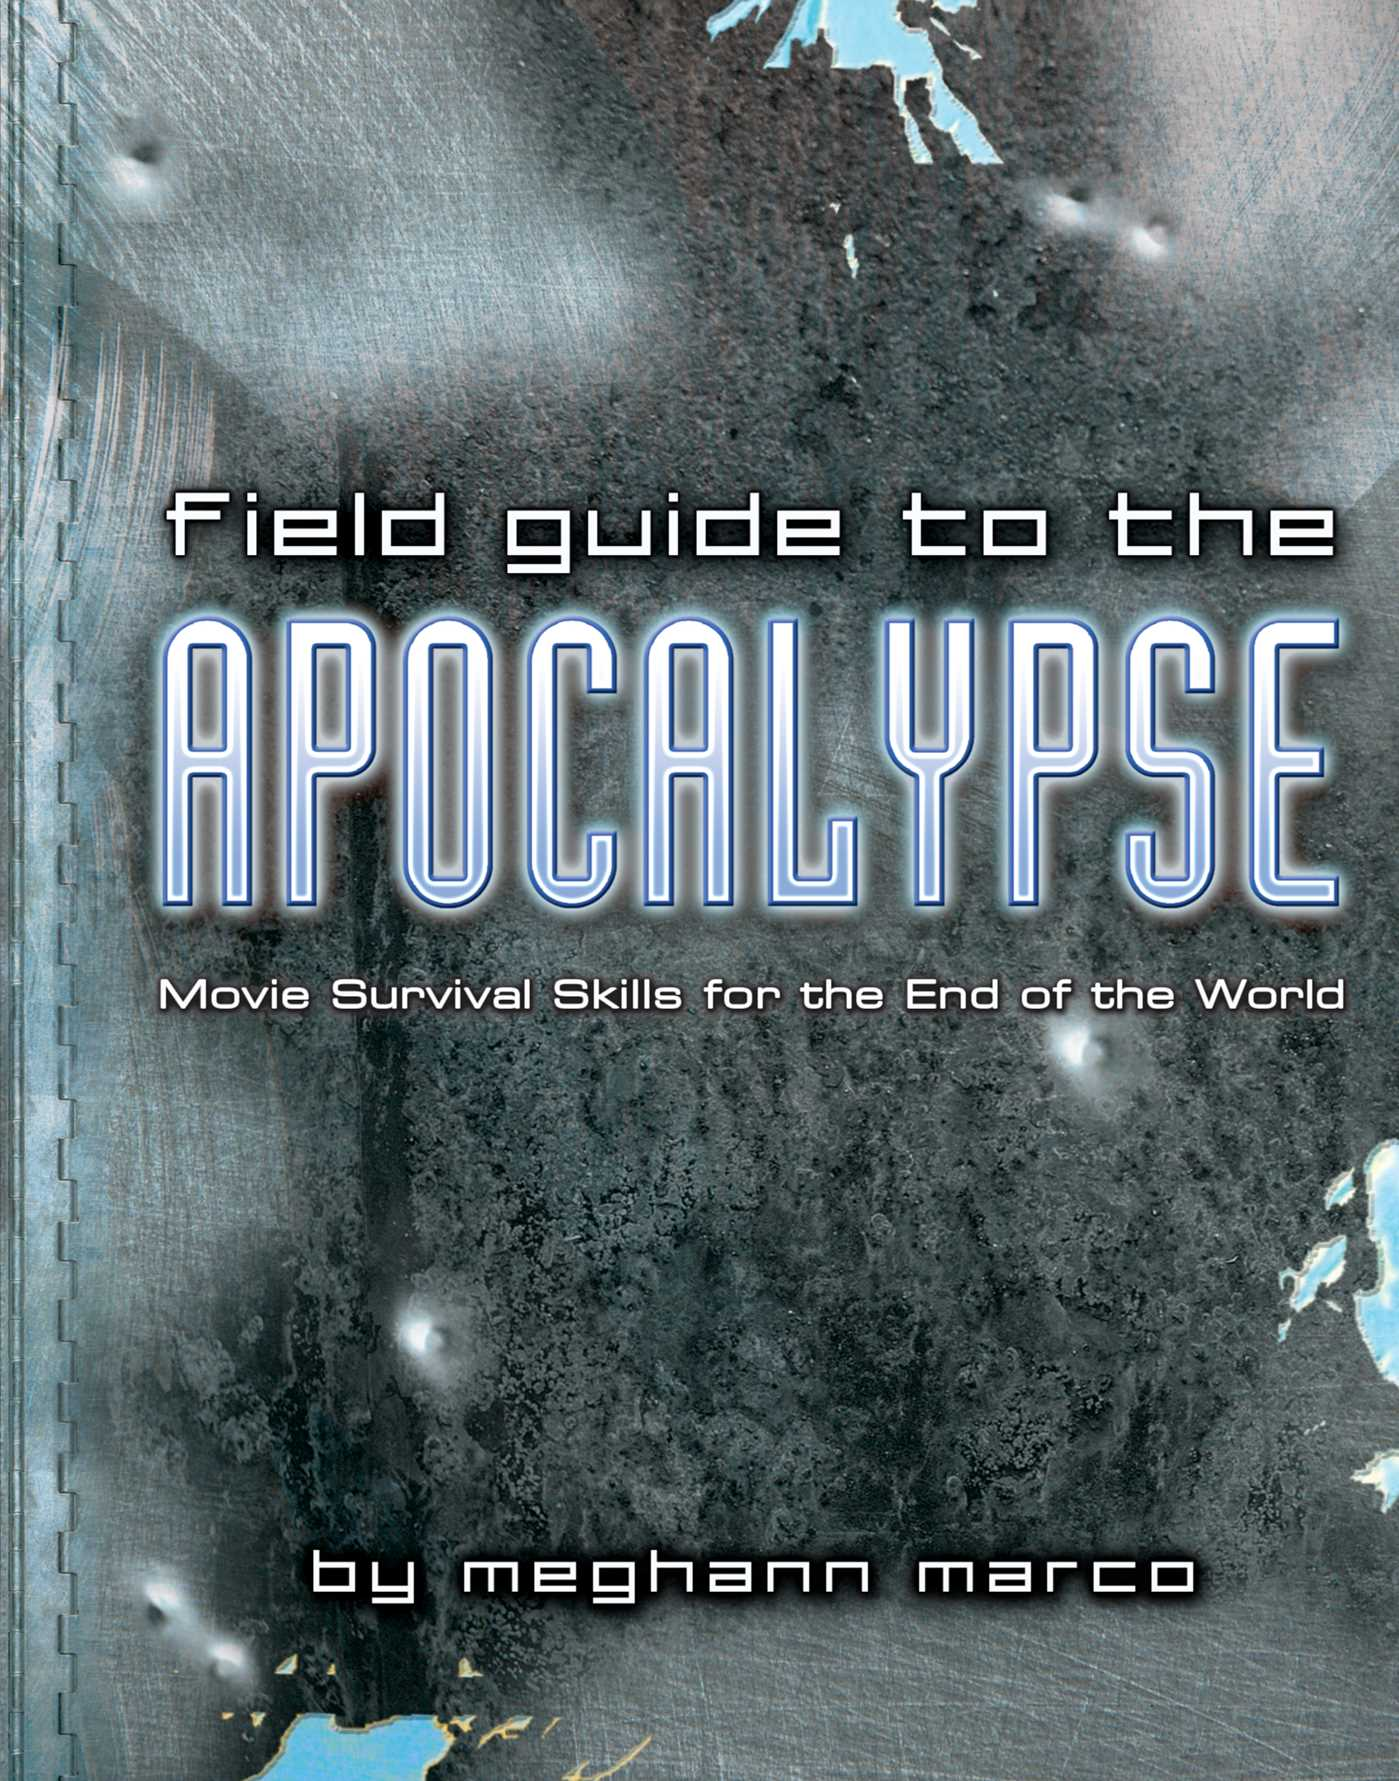 Field guide to the apocalypse 9781439188071 hr